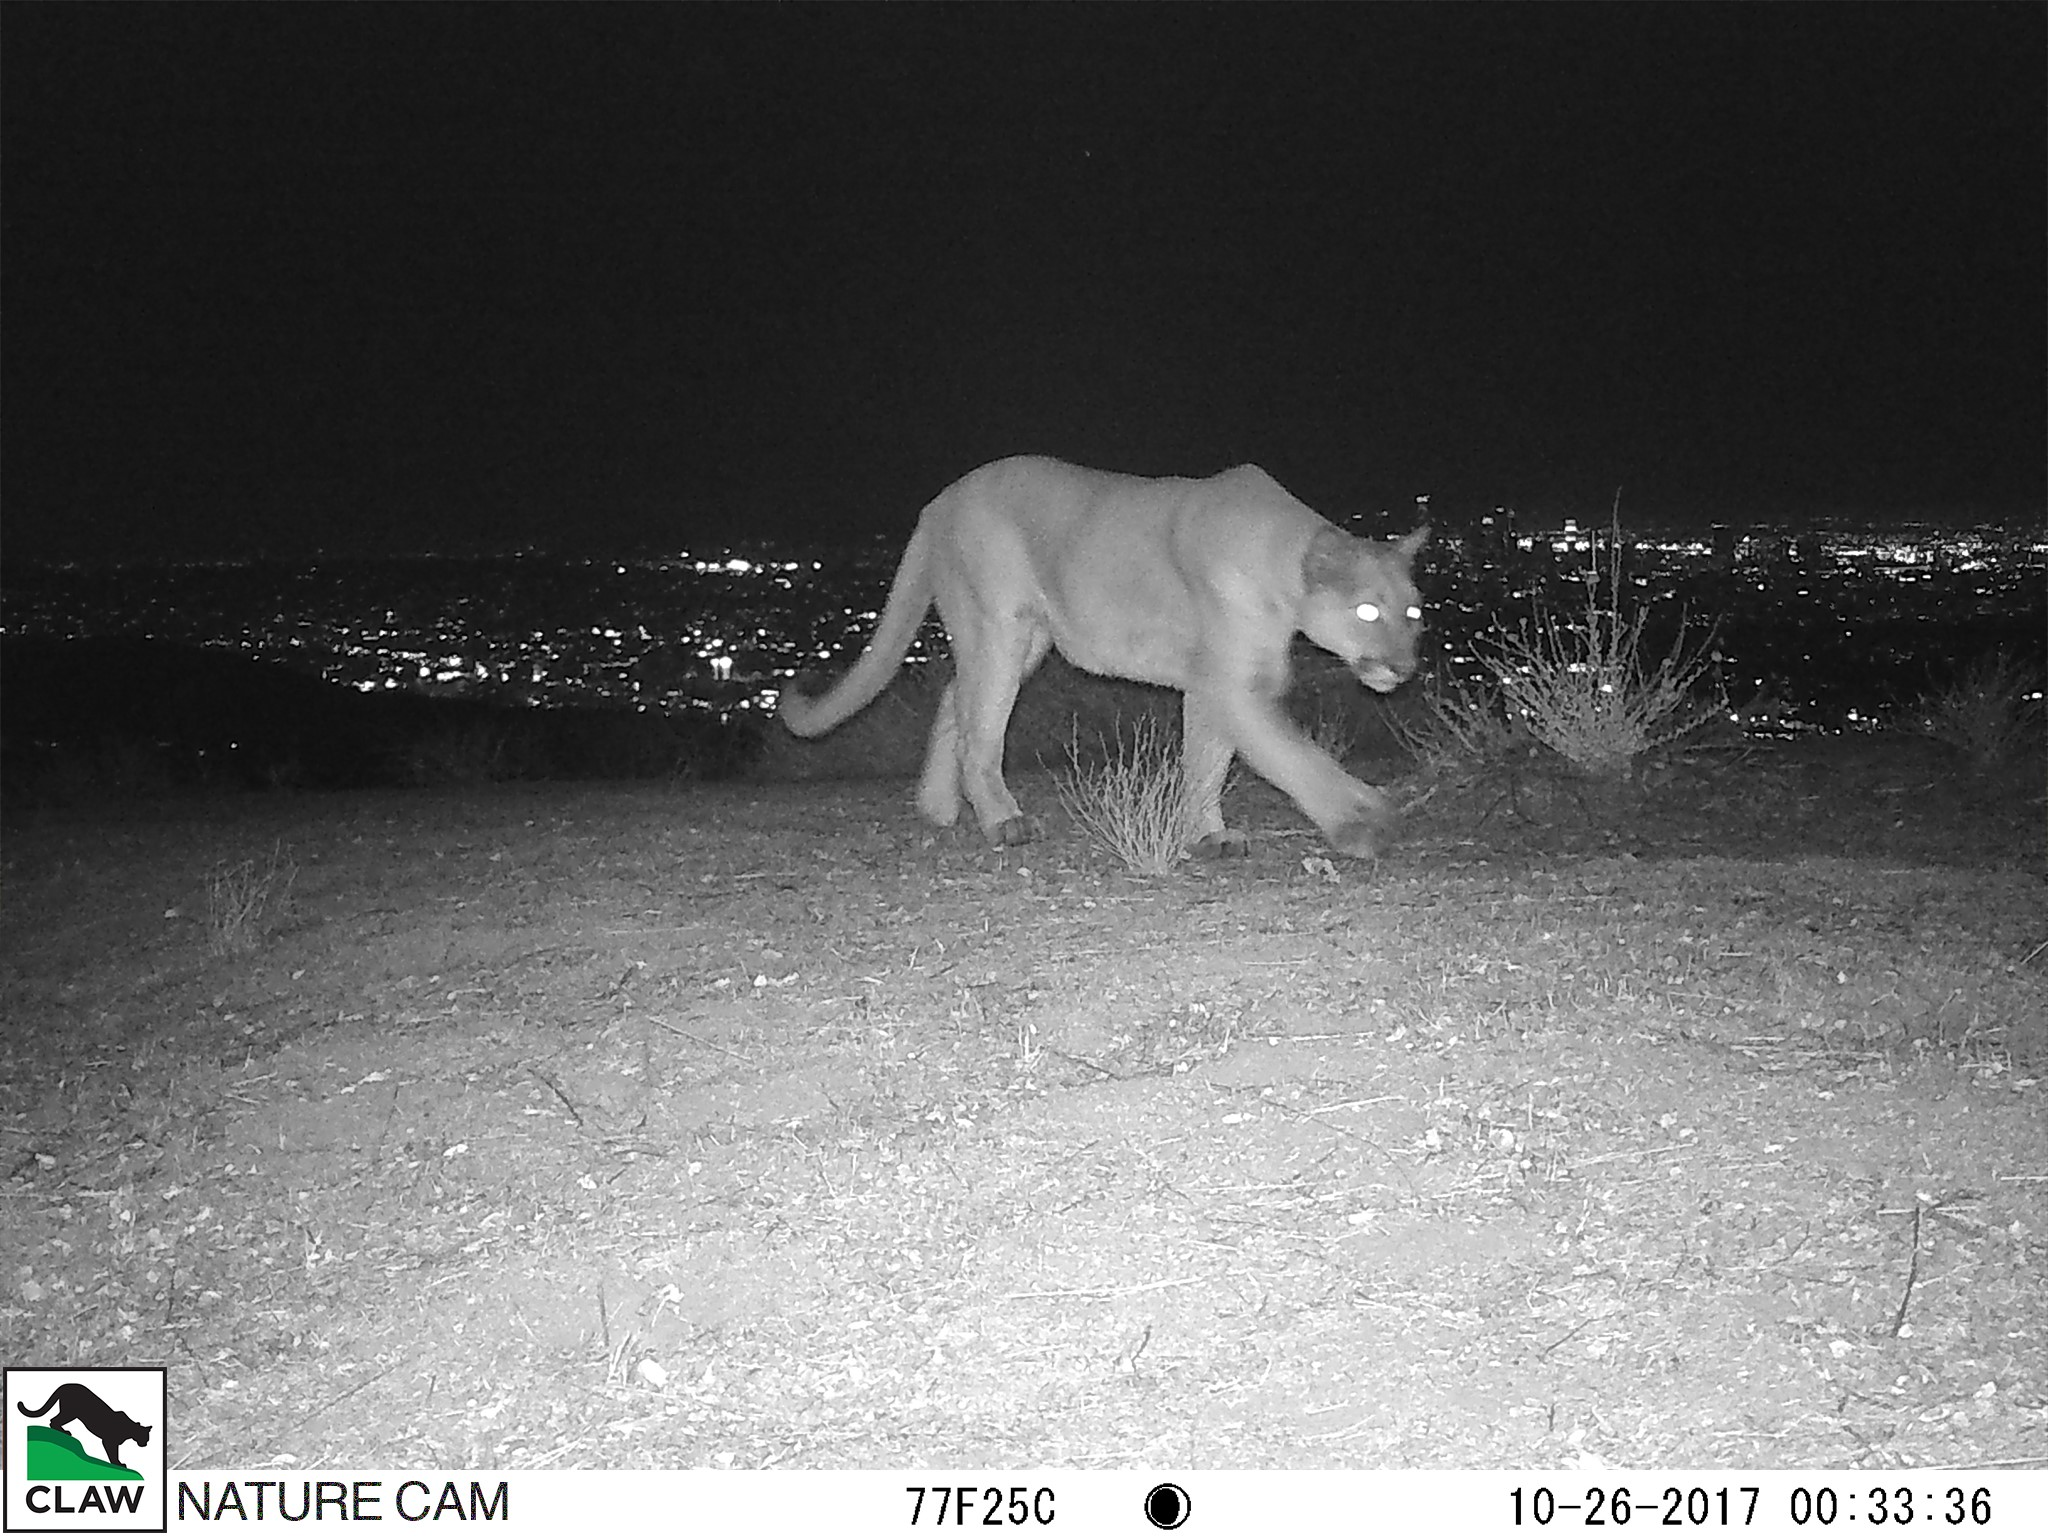 A mountain lion was captured by a wildlife camera in Laurel Canyon on Oct. 26, 2017. (Credit: Citizens for Los Angeles Wildlife)